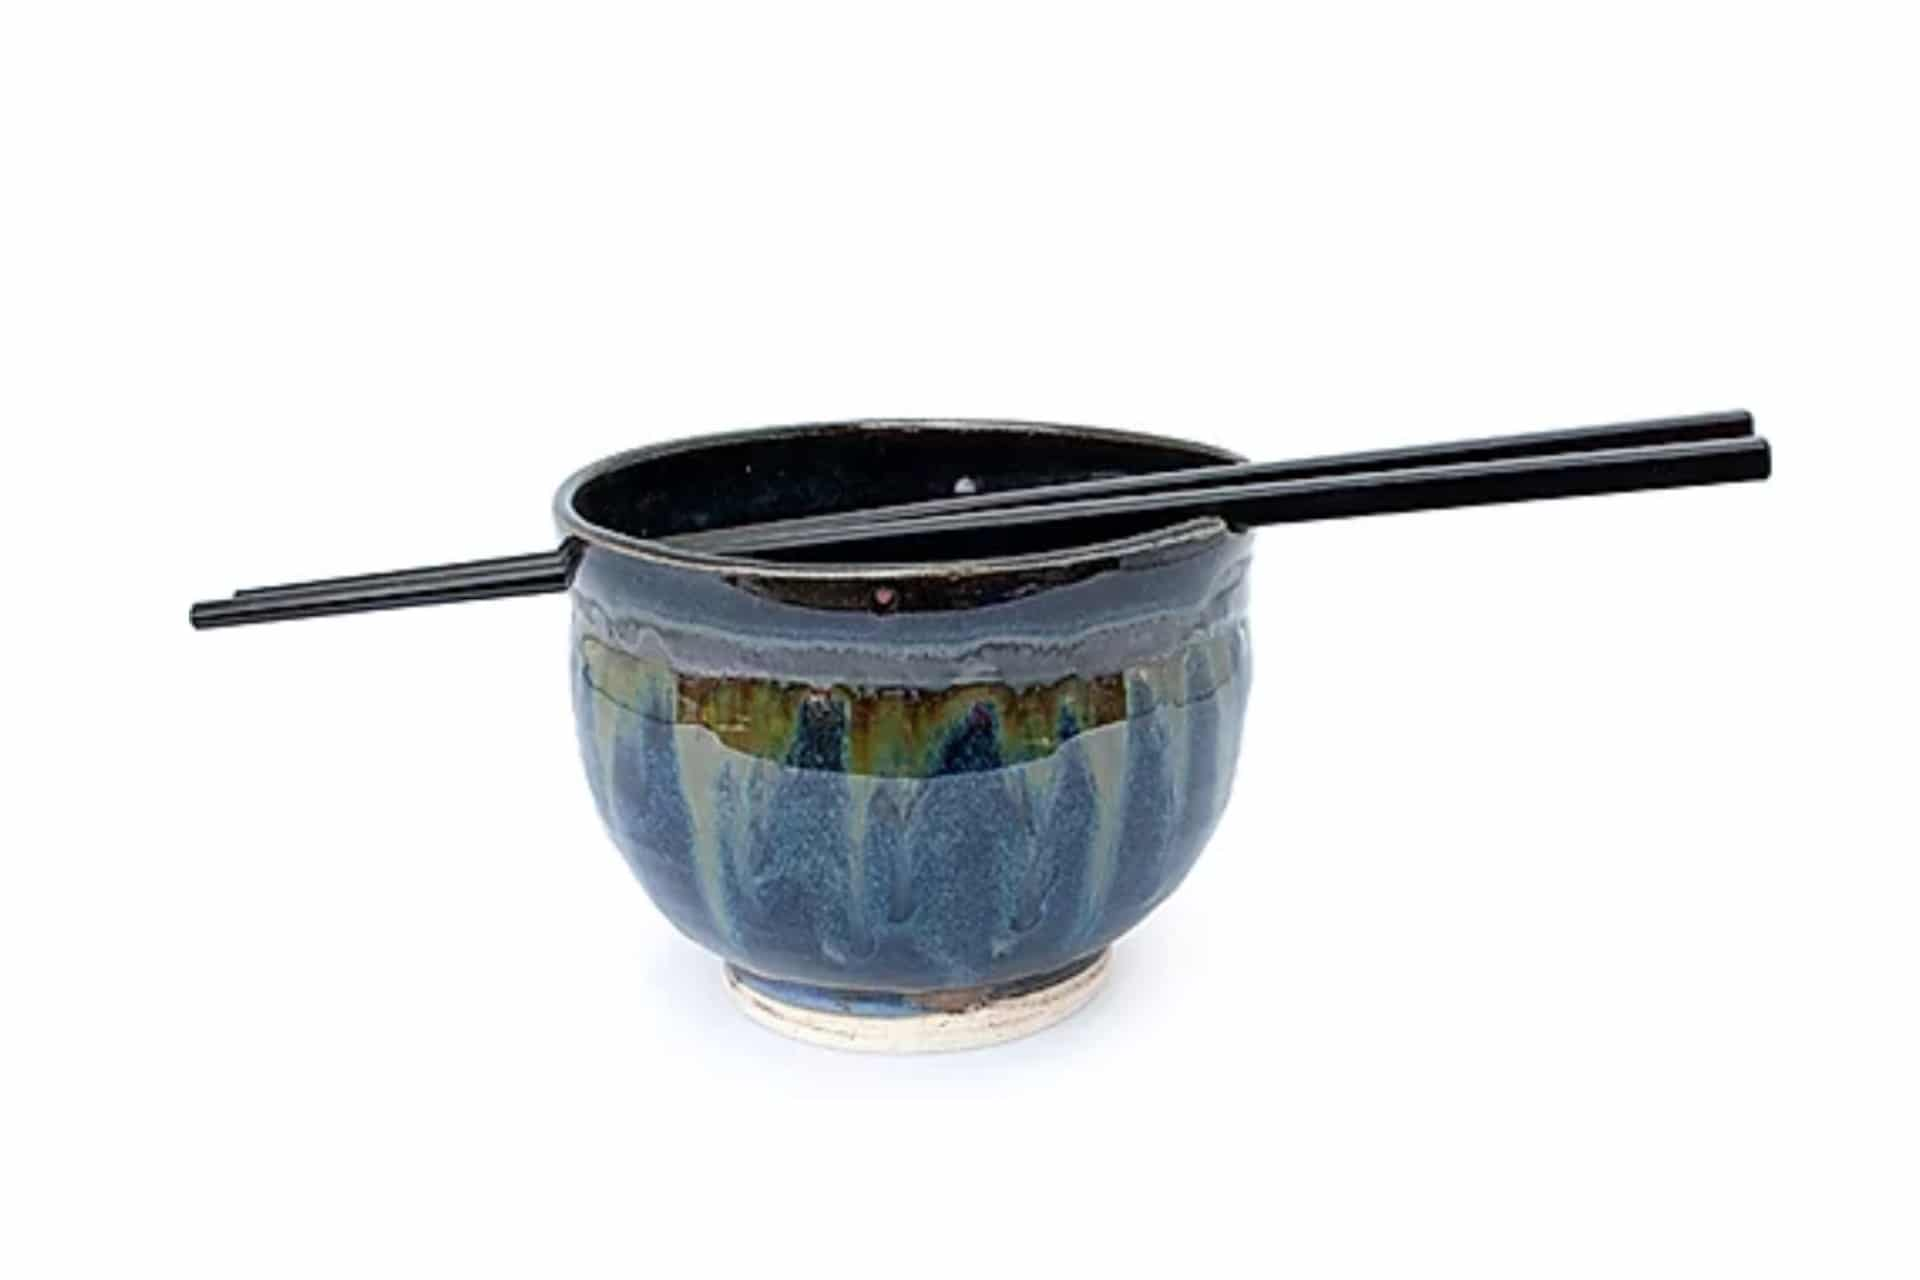 pottery ramen bowl with chopsticks